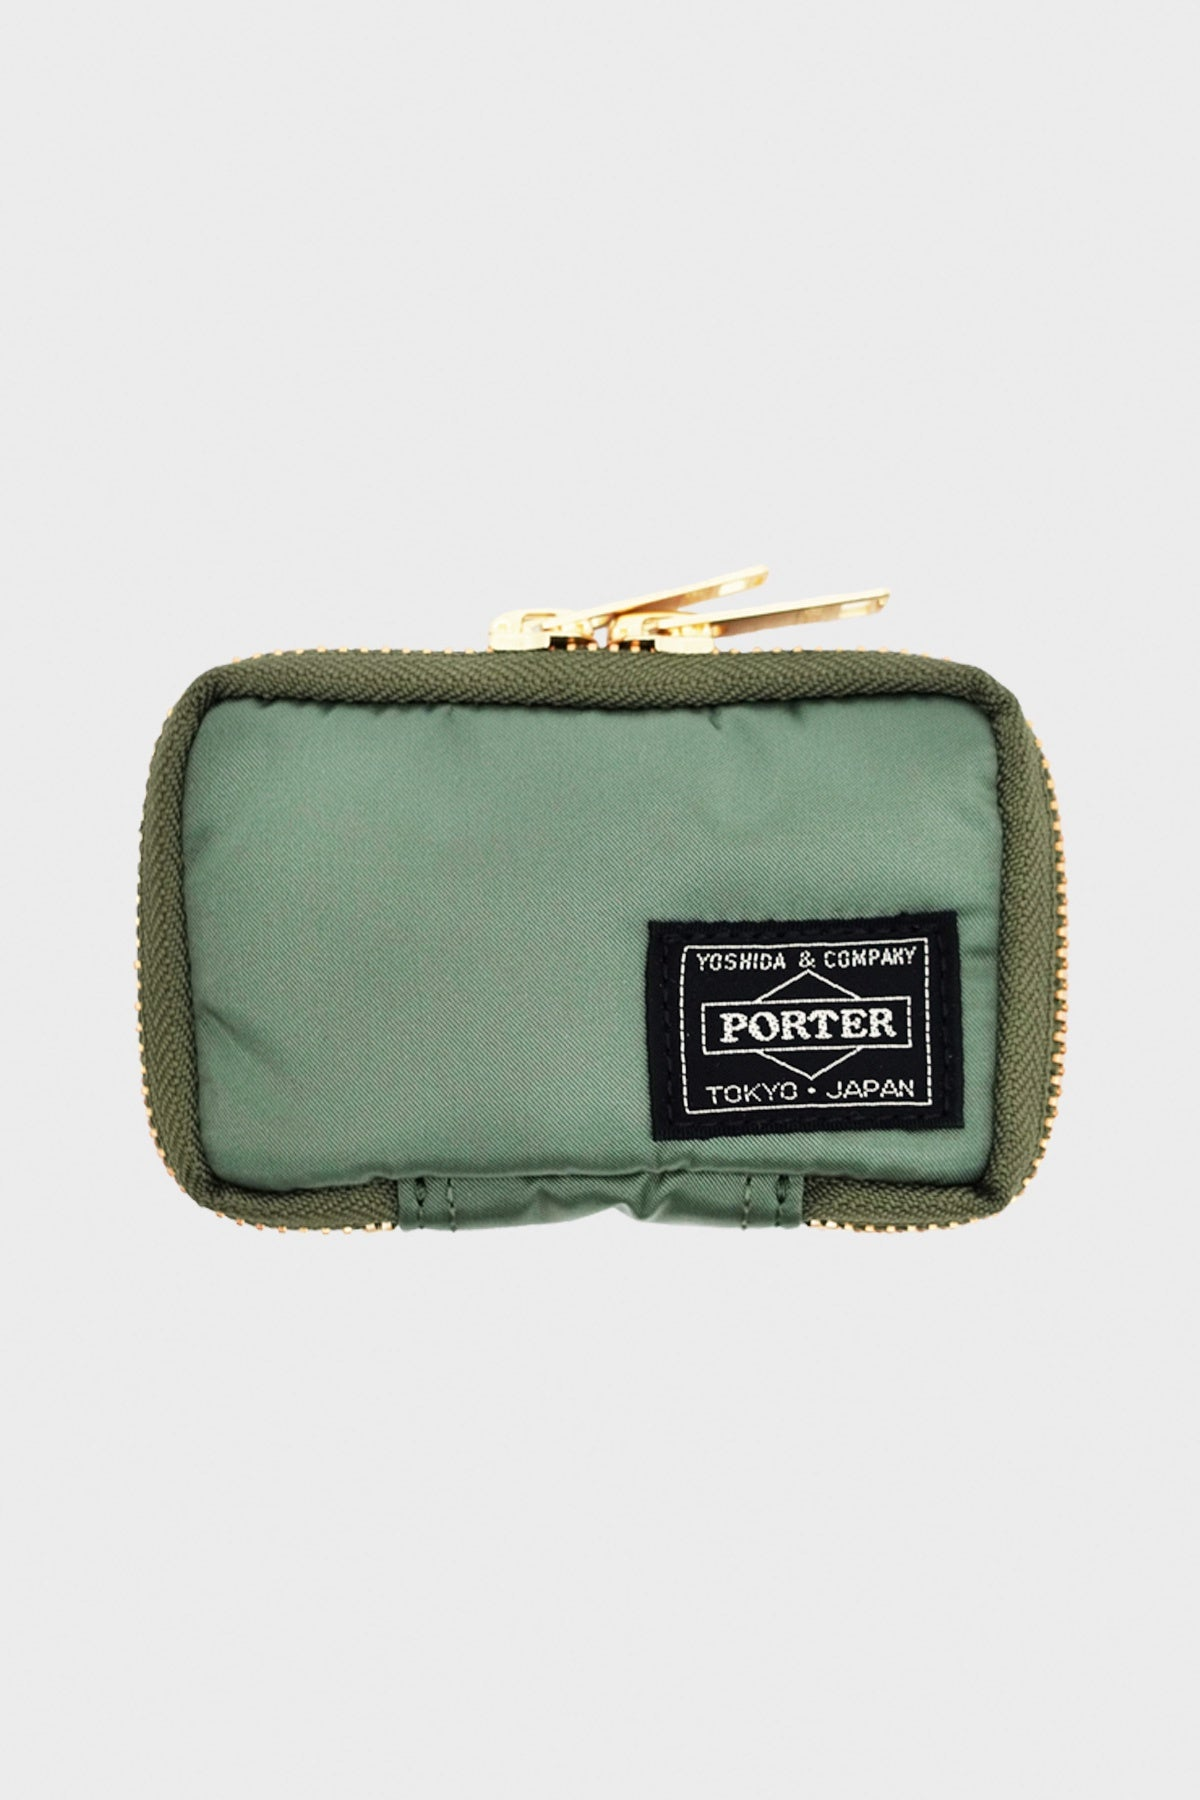 Porter Yoshida and Co - Nylon Key Case - Sage Green - Canoe Club